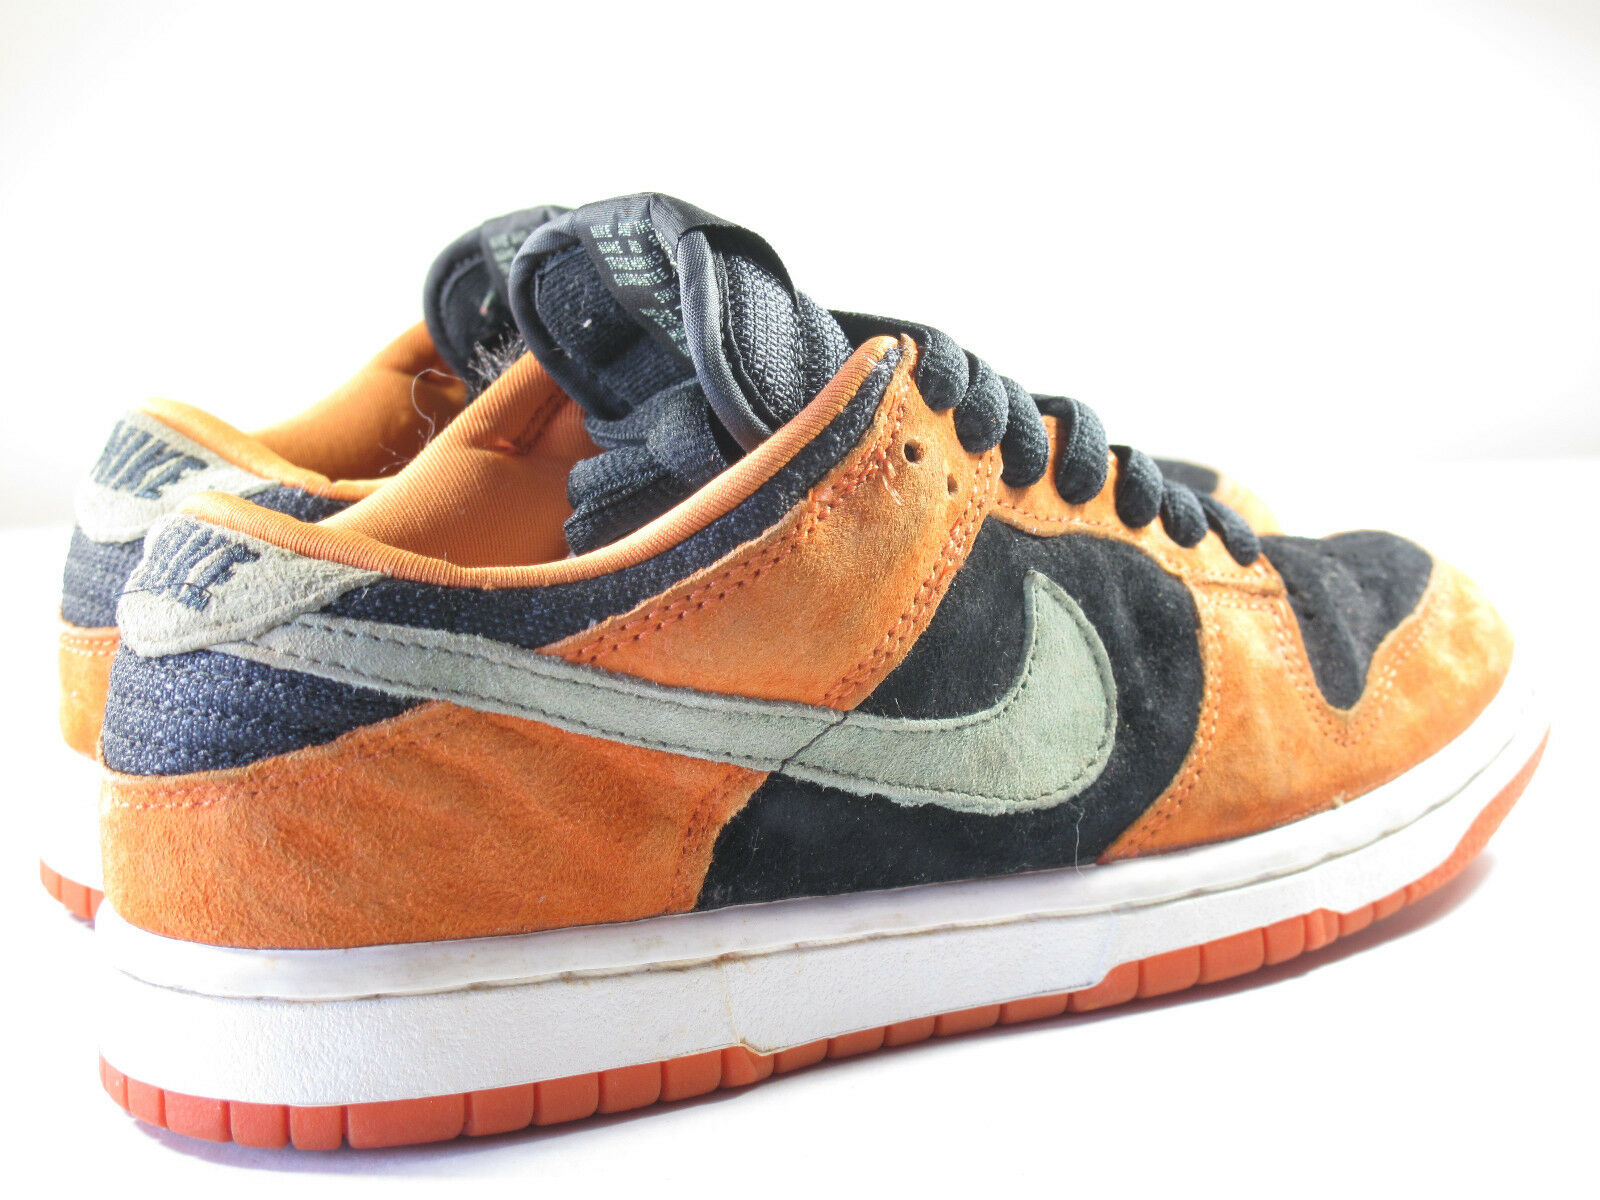 NIKE 2001 DUNK CO.JP UGLY DUCKLING NORI SUEDE 5 SUPREME DENIM LUCKY SB PRO B